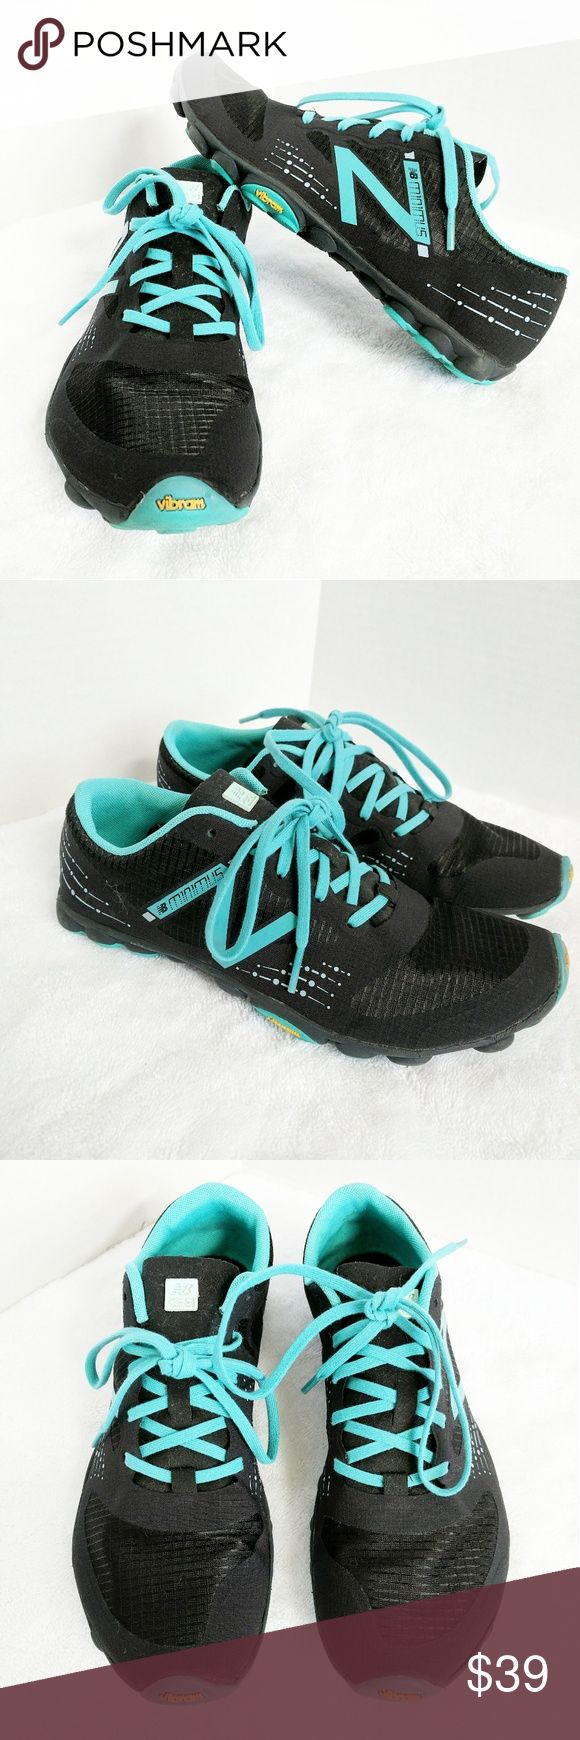 New Balance Minimus Zero Trail Running Shoes 9 The lightest, most minimum feel trail shoe. Worn only once or twice to the gym. Excellent condition. Vibram outsole. Odor resistant. Welded seams. Black and turquoise. Women's size 9 New Balance Shoes Athletic Shoes